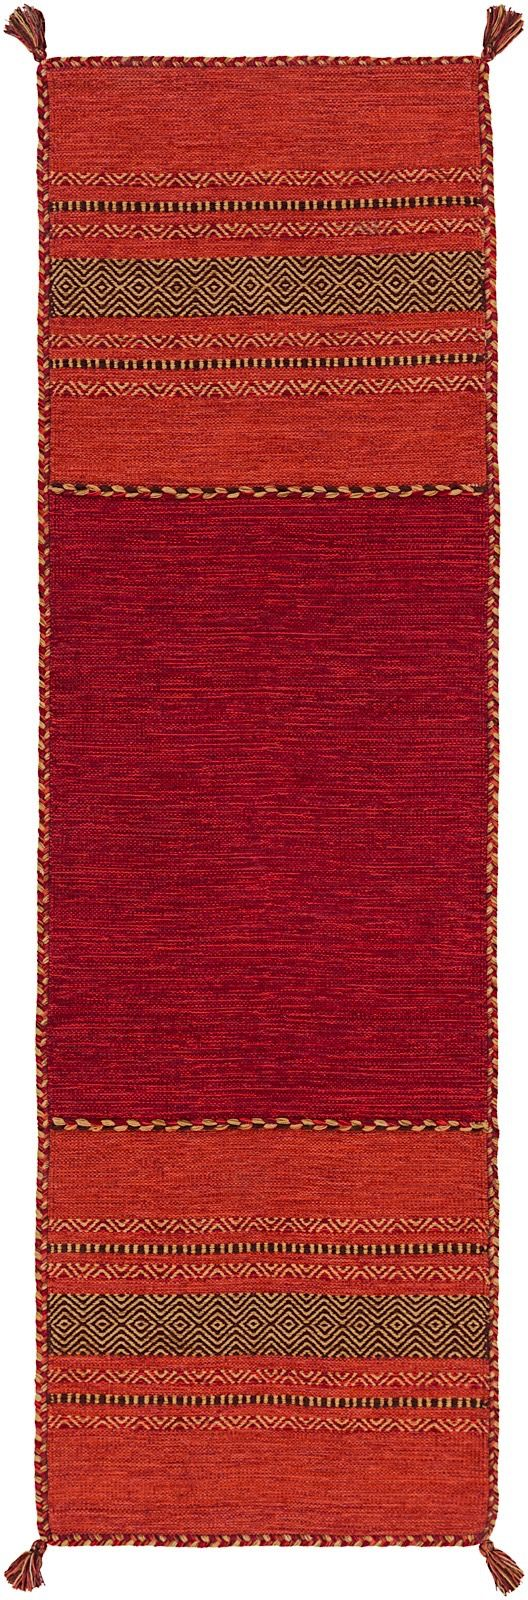 surya trenza southwestern/lodge area rug collection